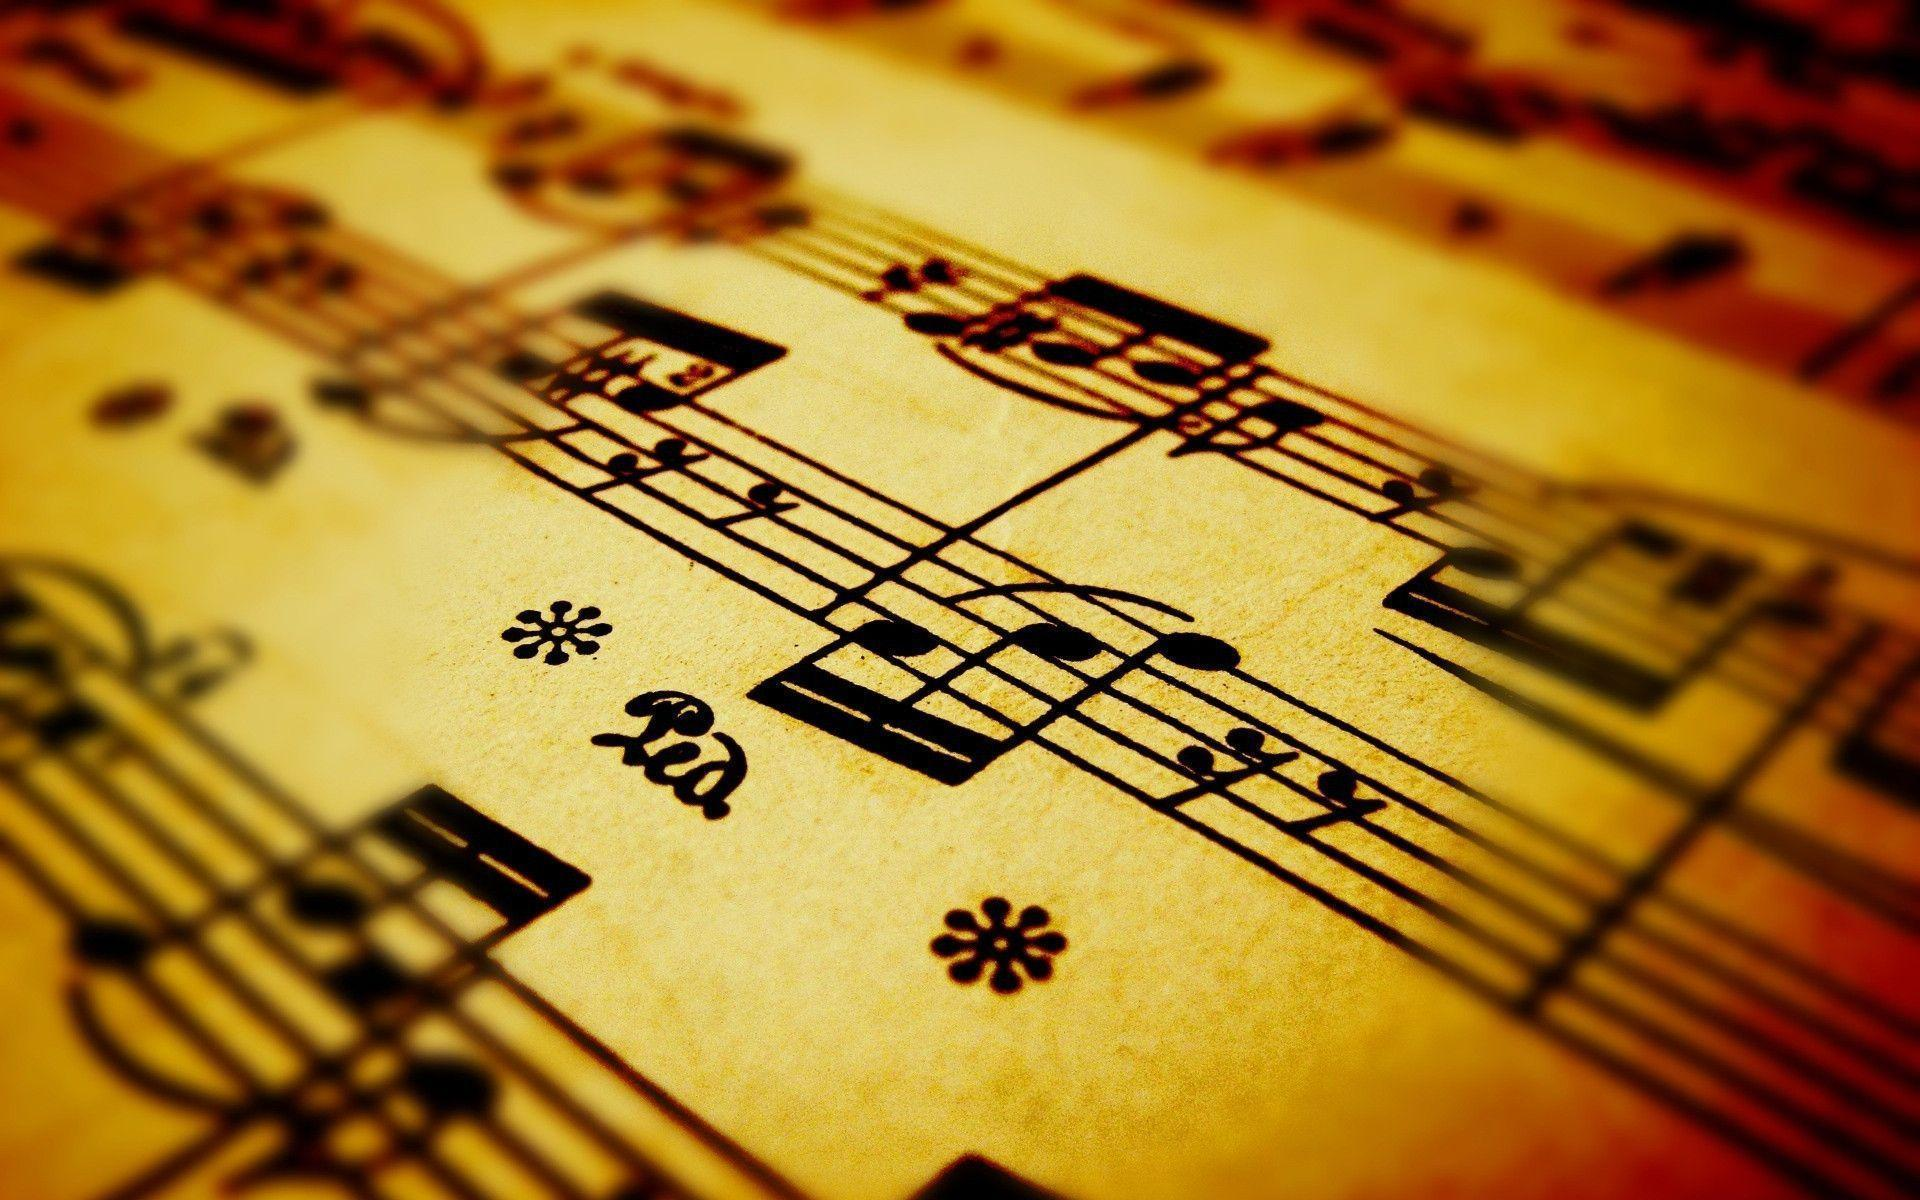 Music Notes Wallpapers 1920x1200 Wallpapers computer